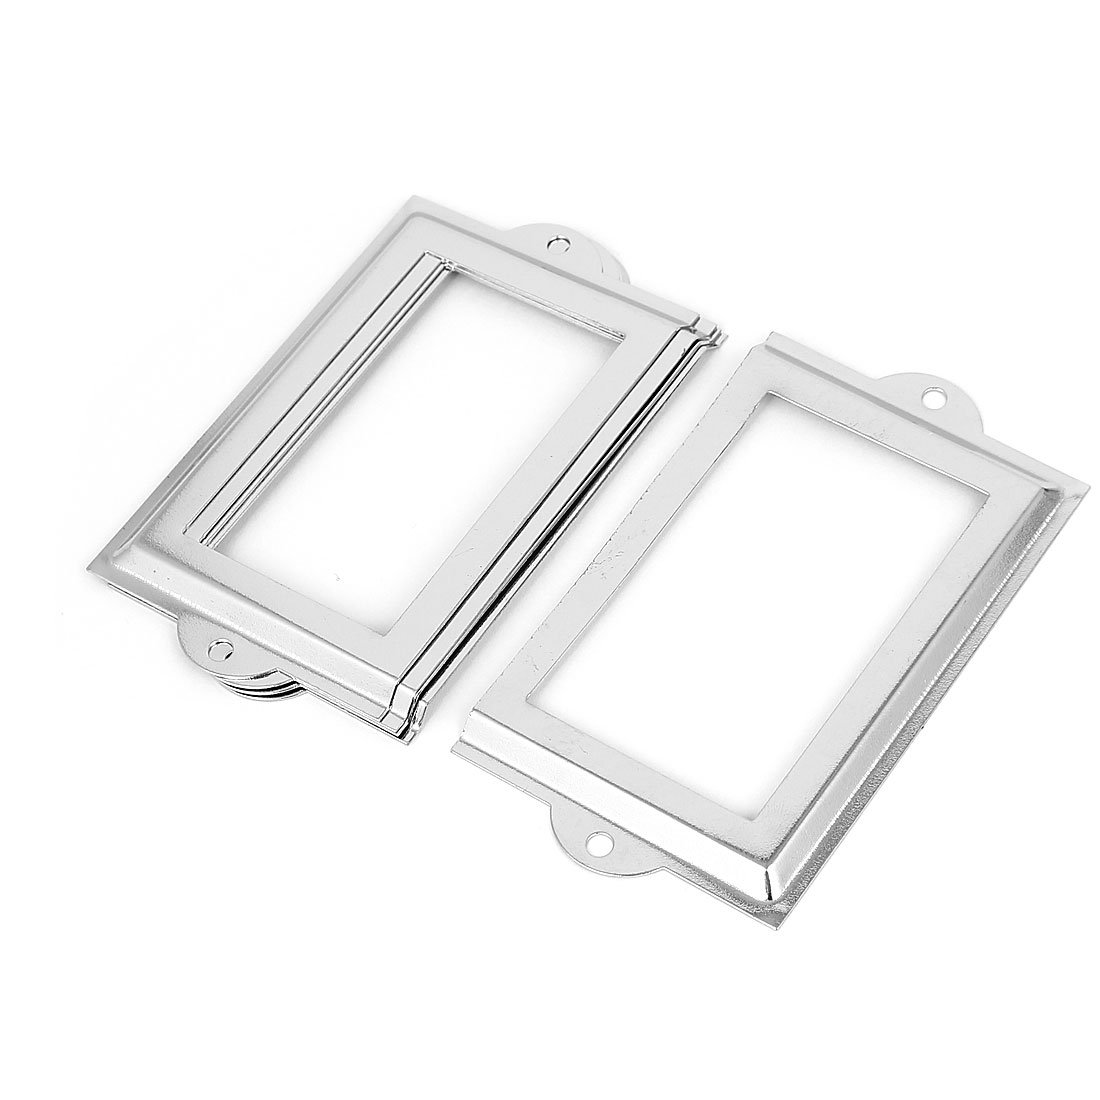 Uxcell Metal 105x60mm File Drawer Tag Label Holder Name Card Frame, 5 Pieces (a15123000ux0430)